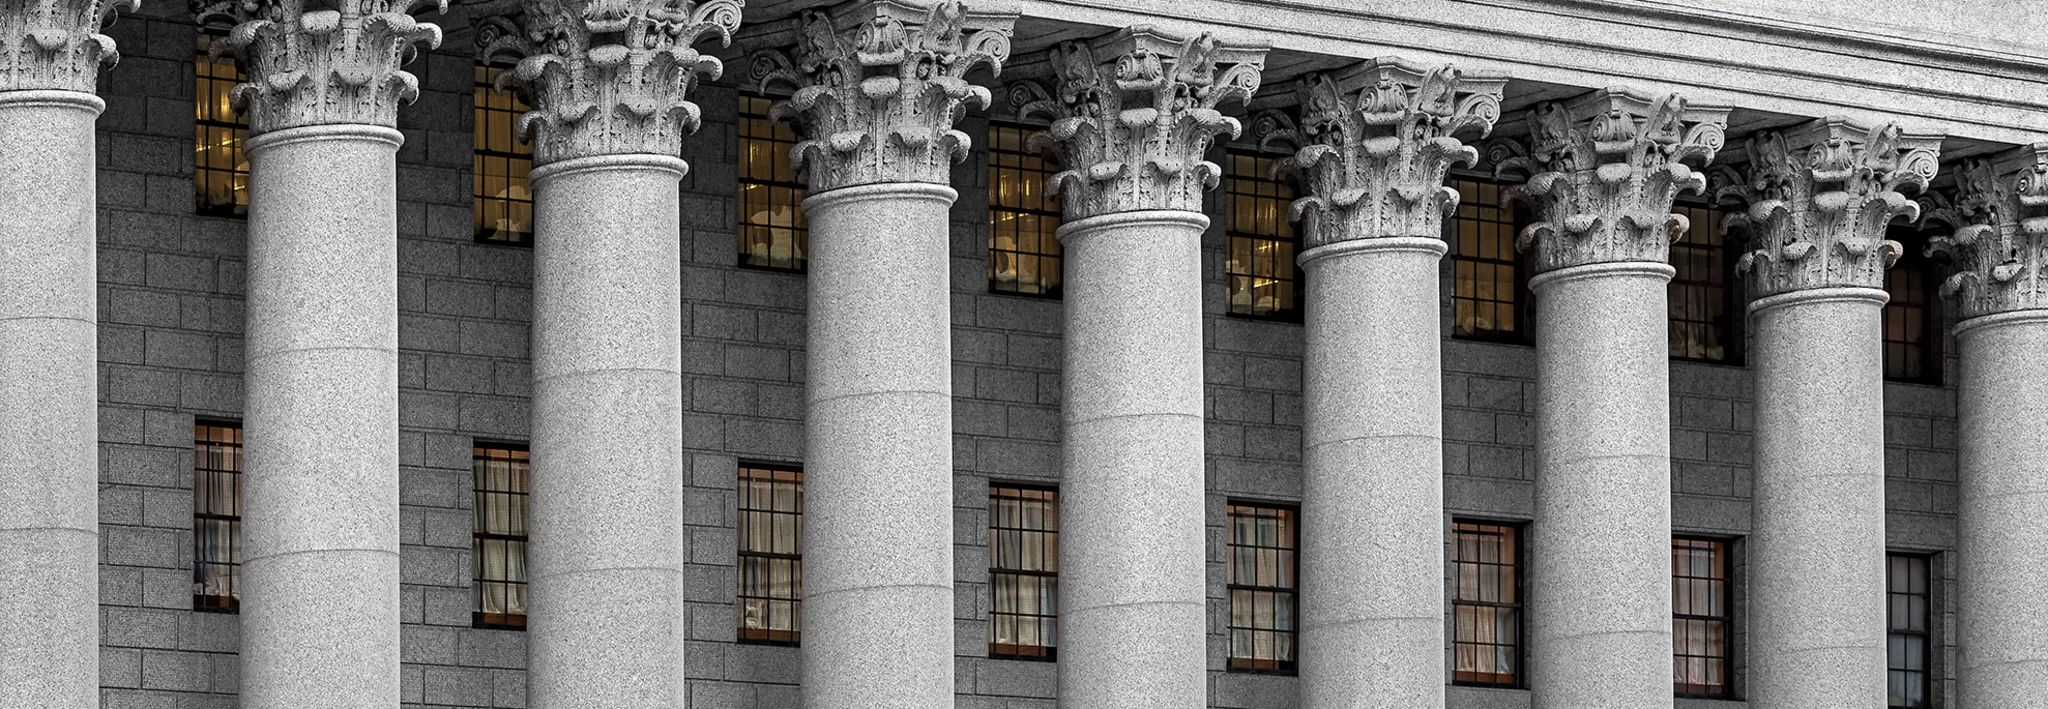 Courthouse pillars.